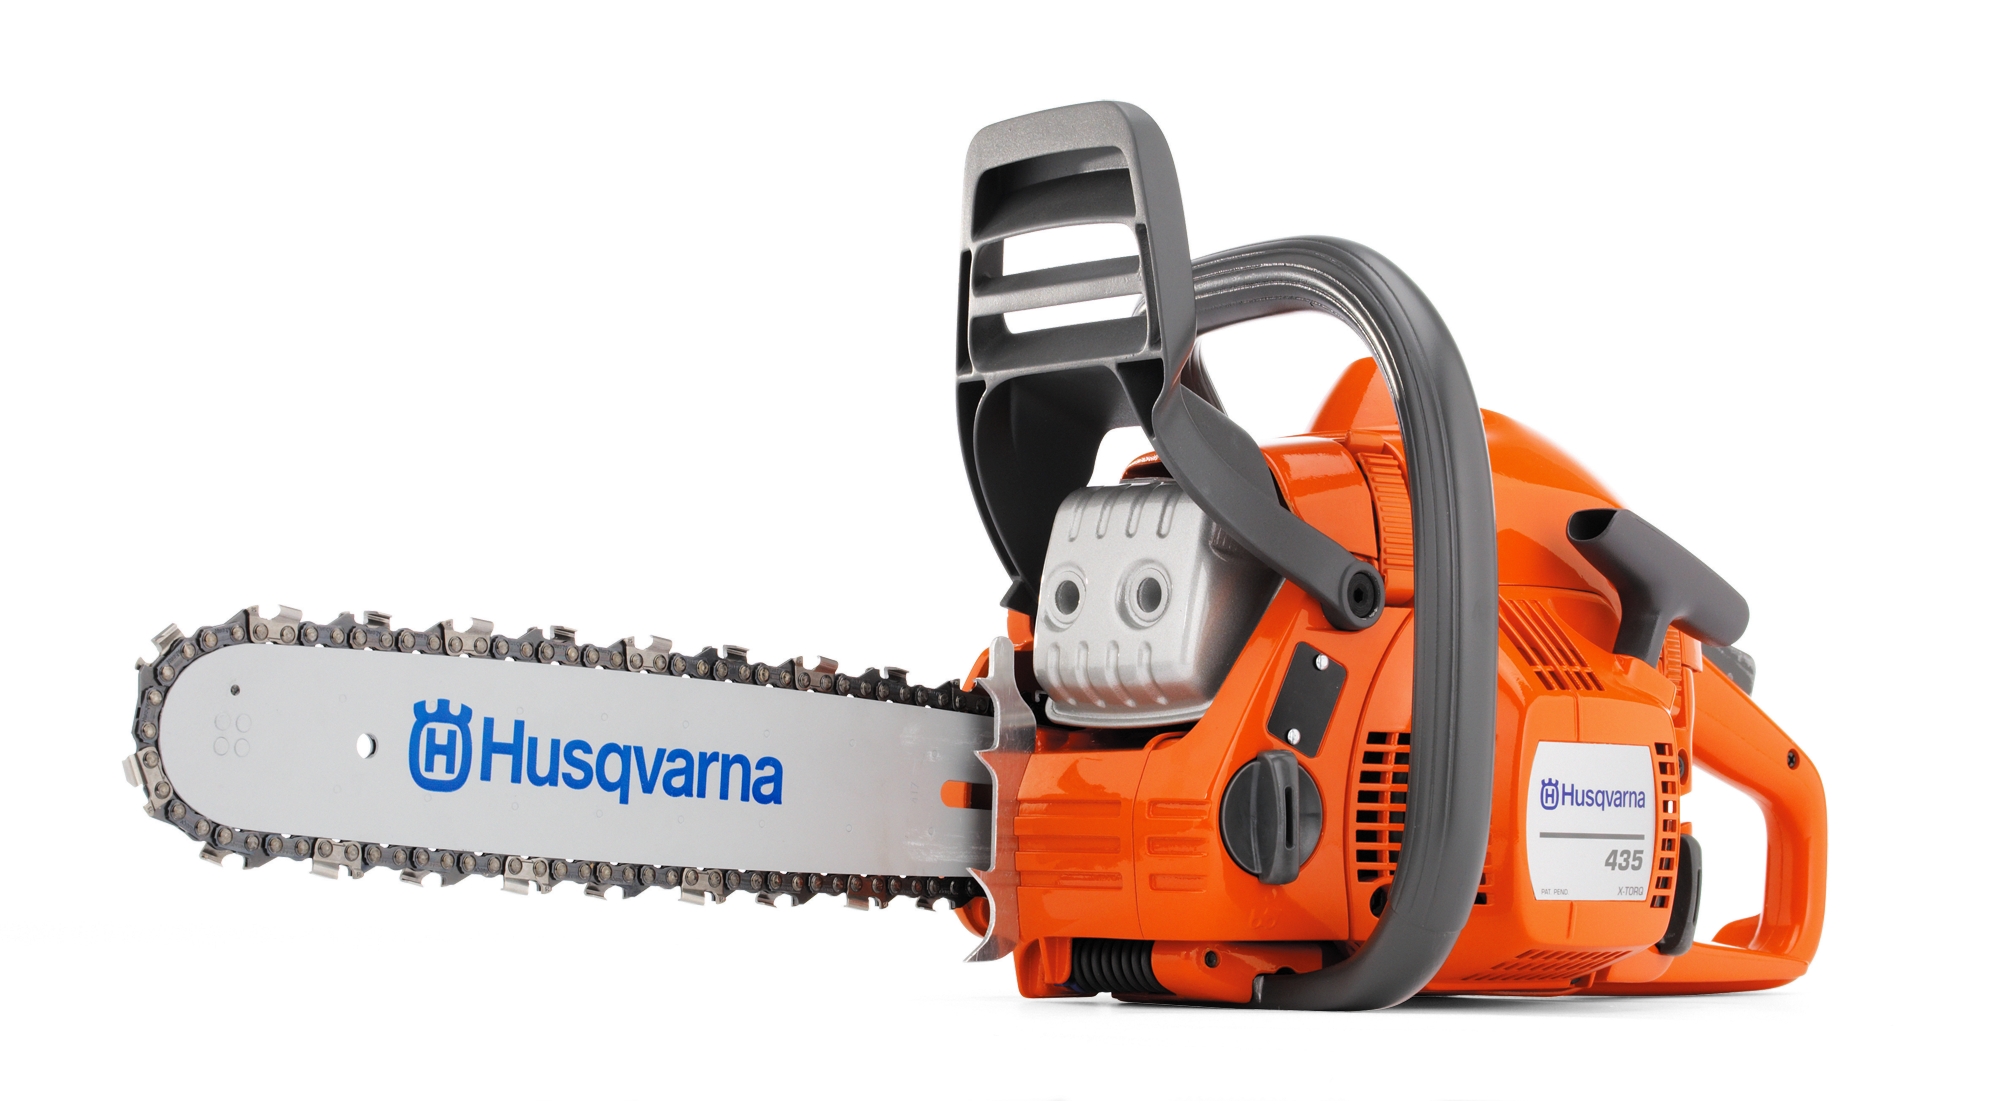 Power saw png. Husqvarna chainsaws